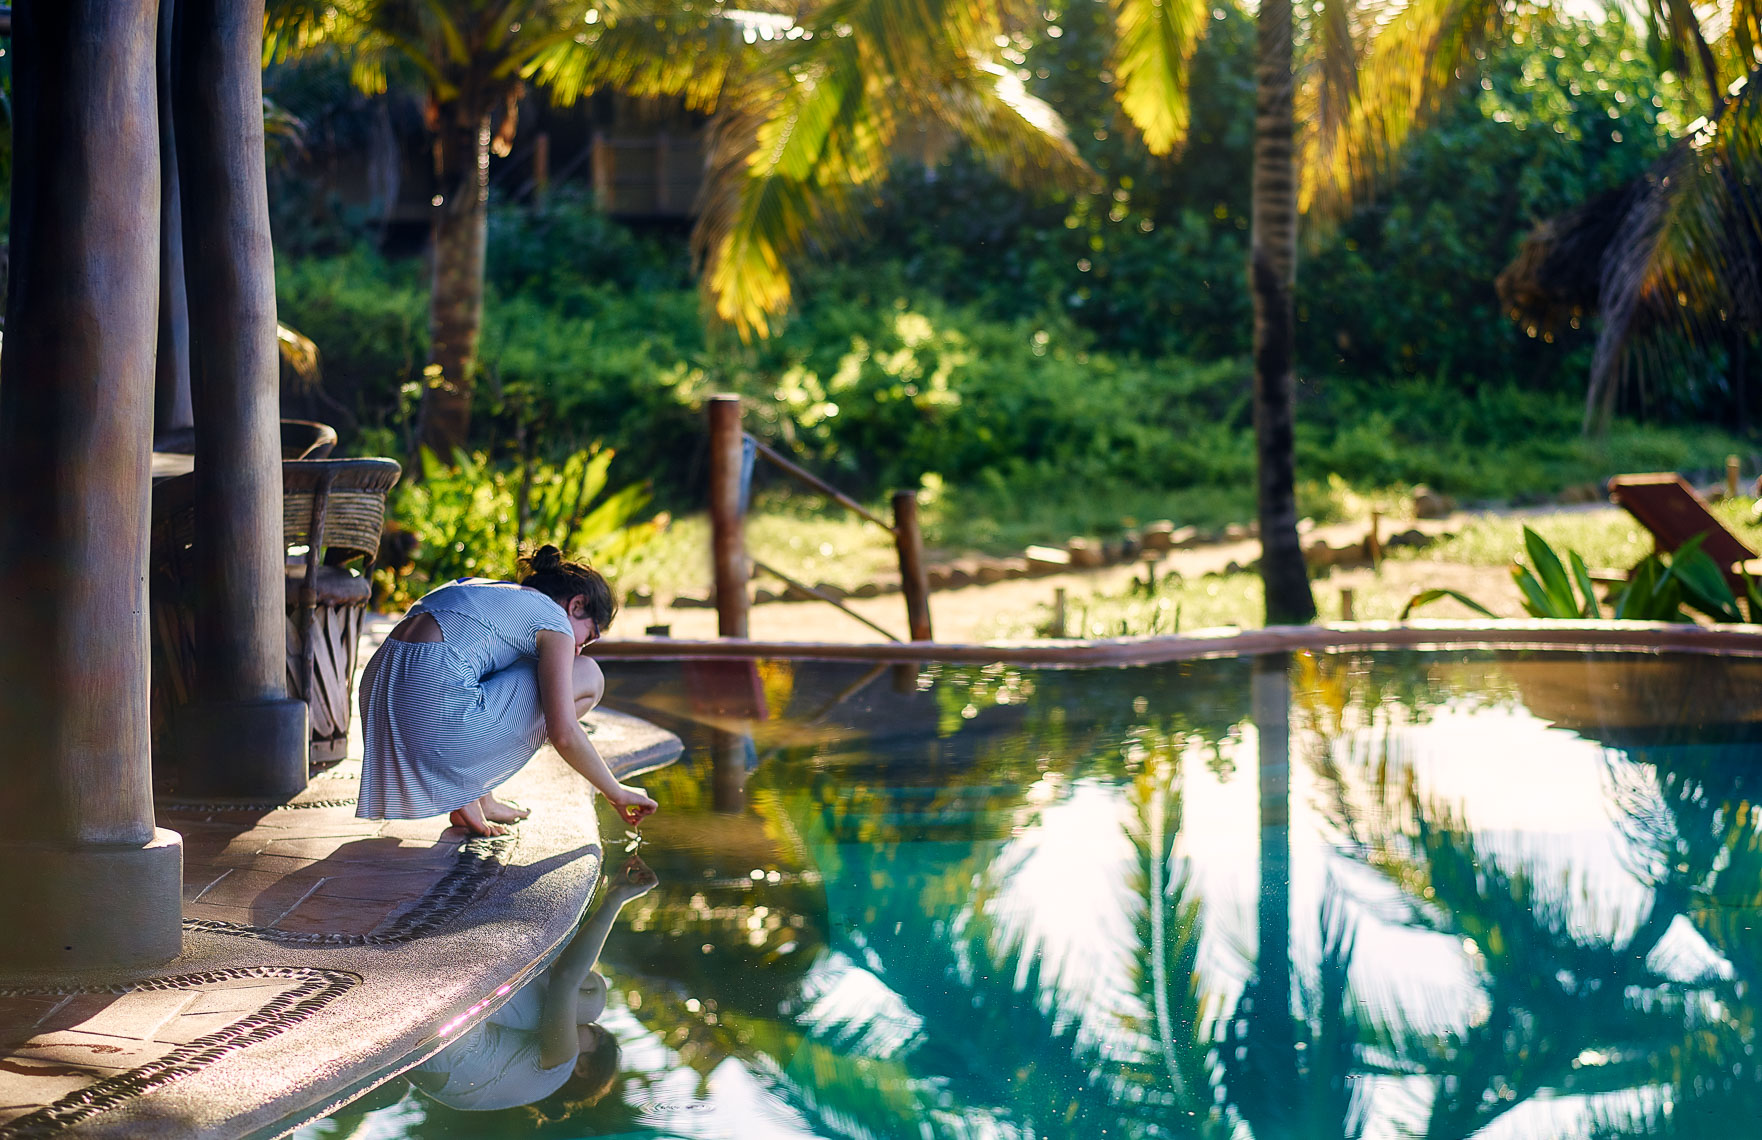 Kevin Steele - A young girl at the pool of a  beautiful eco resort